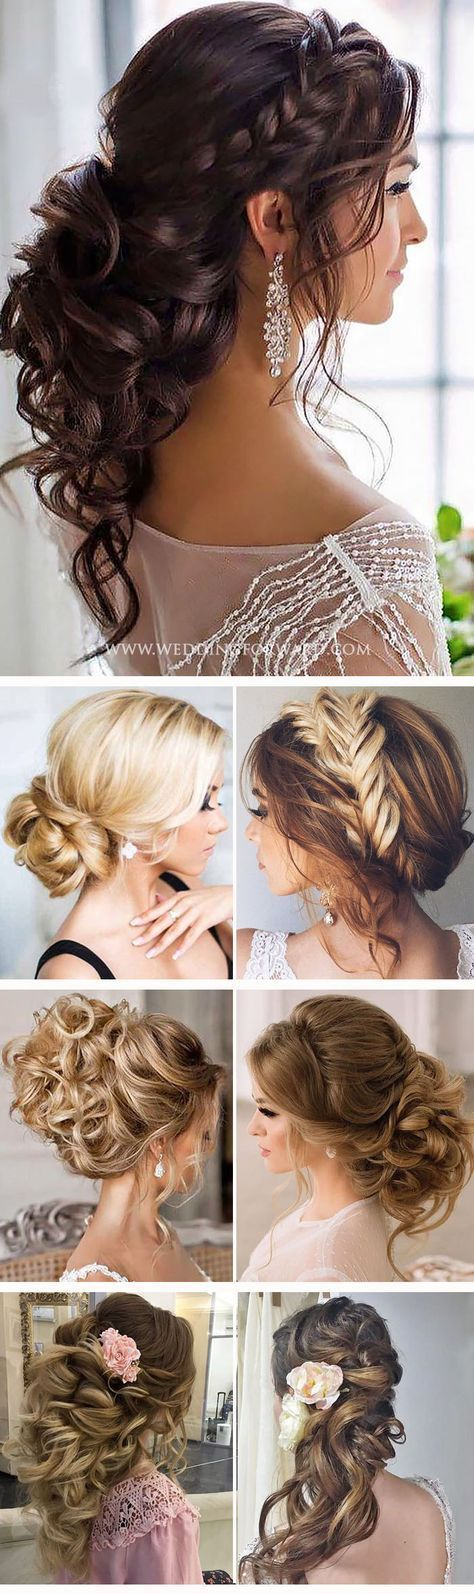 Killer Swept-Back Wedding Hairstyles ❤️ If you are not sure which hairstyle to choose, see our collection of swept-back wedding hairstyles and you will find gorgeous and fancy looks! See more: http://www.weddingforward.com/swept-back-wedding-hairstyles/ #weddings #hairstyles